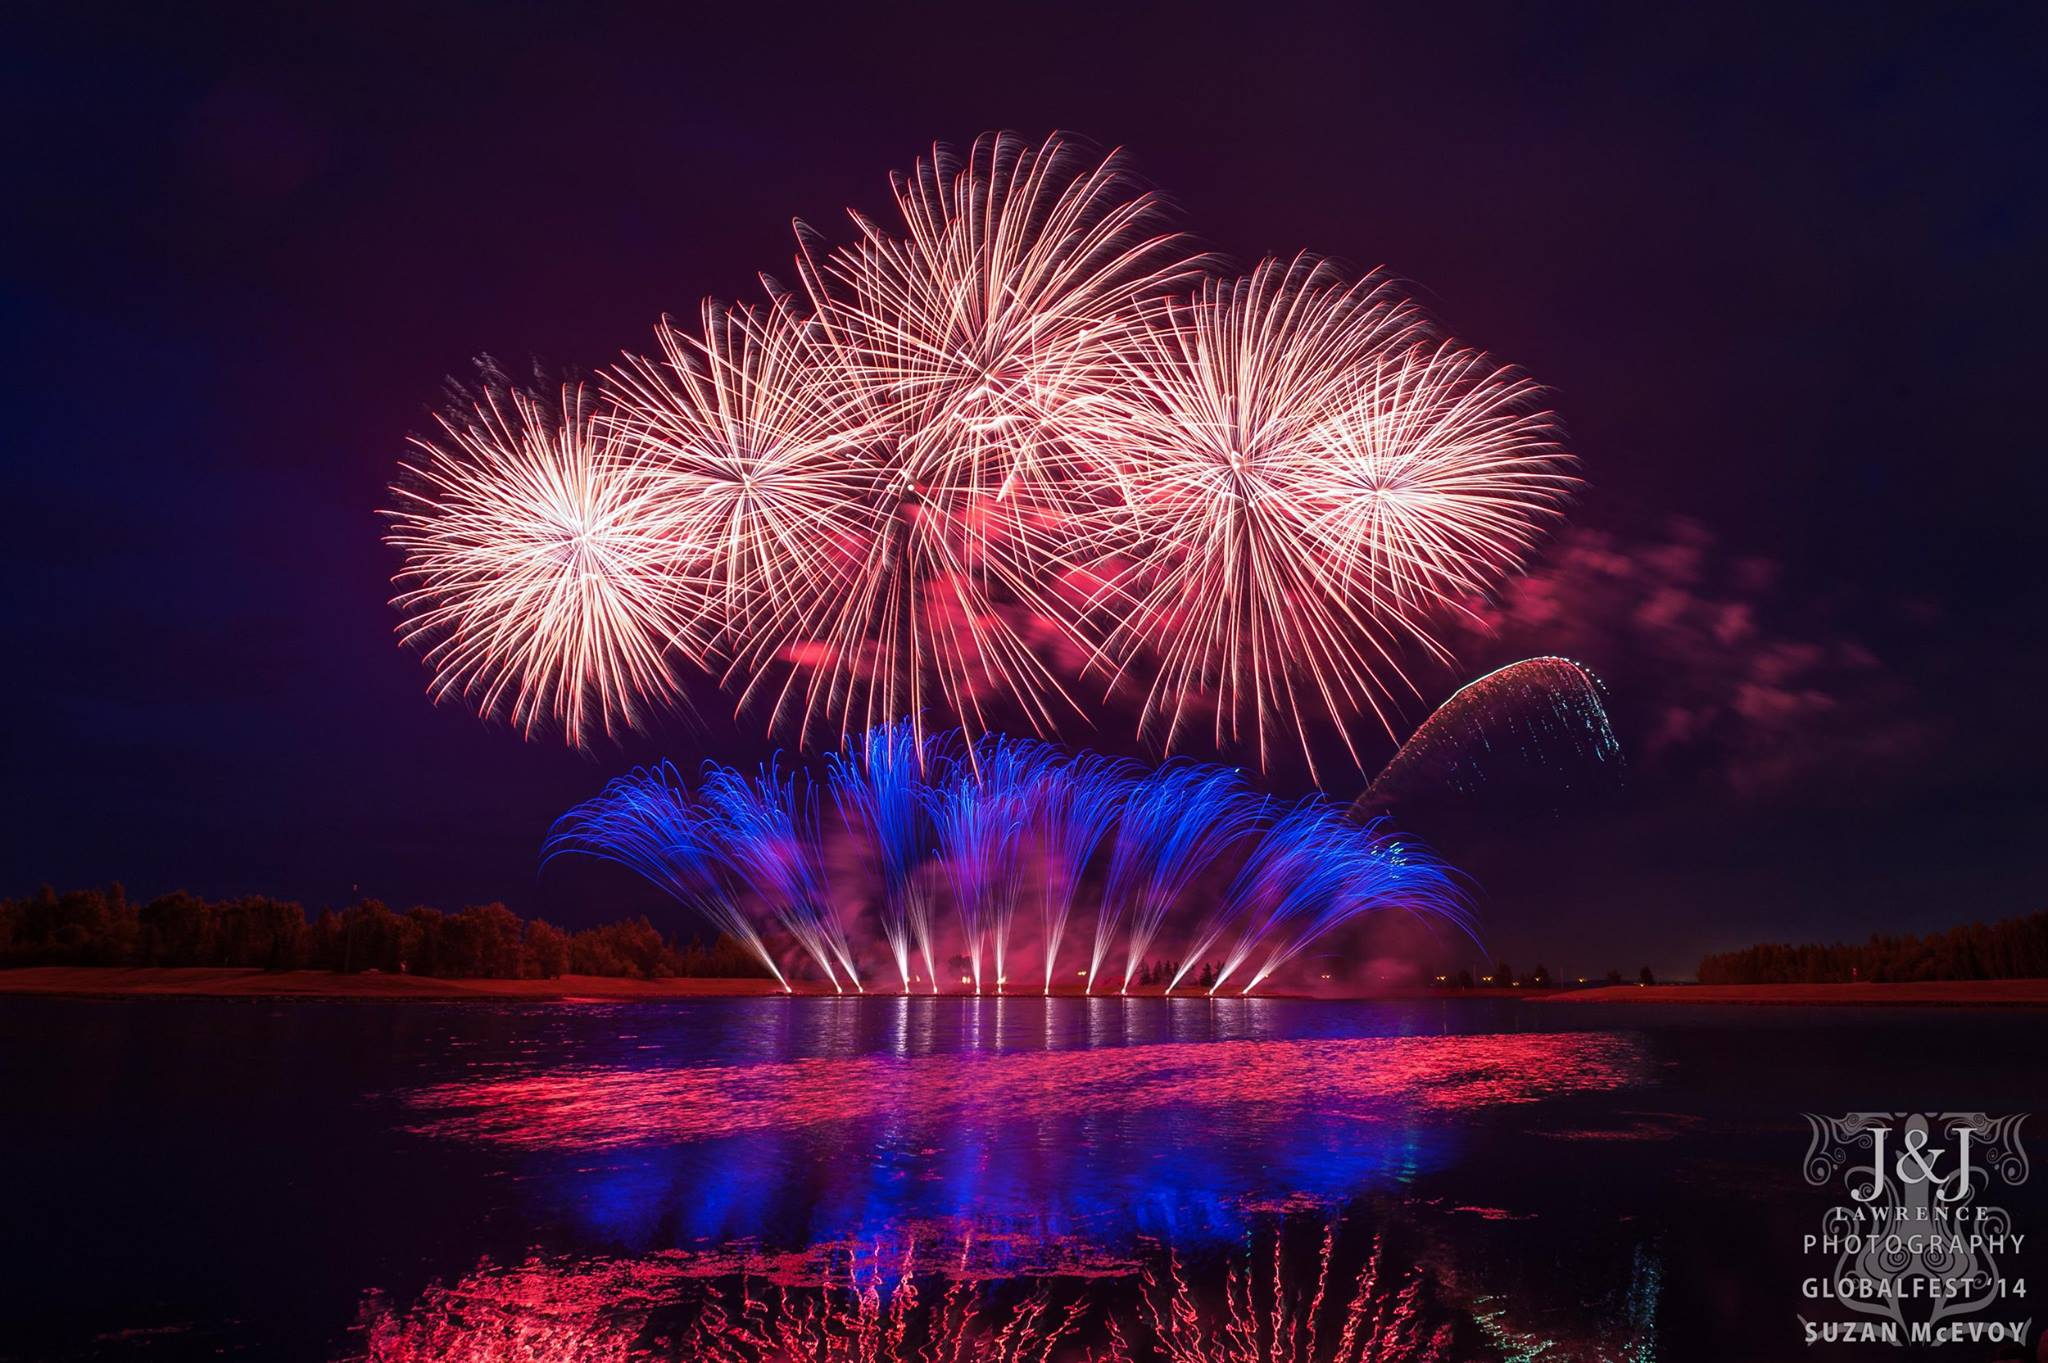 Image: GlobalFest - The Calgary Fireworks Festival Society / Facebook